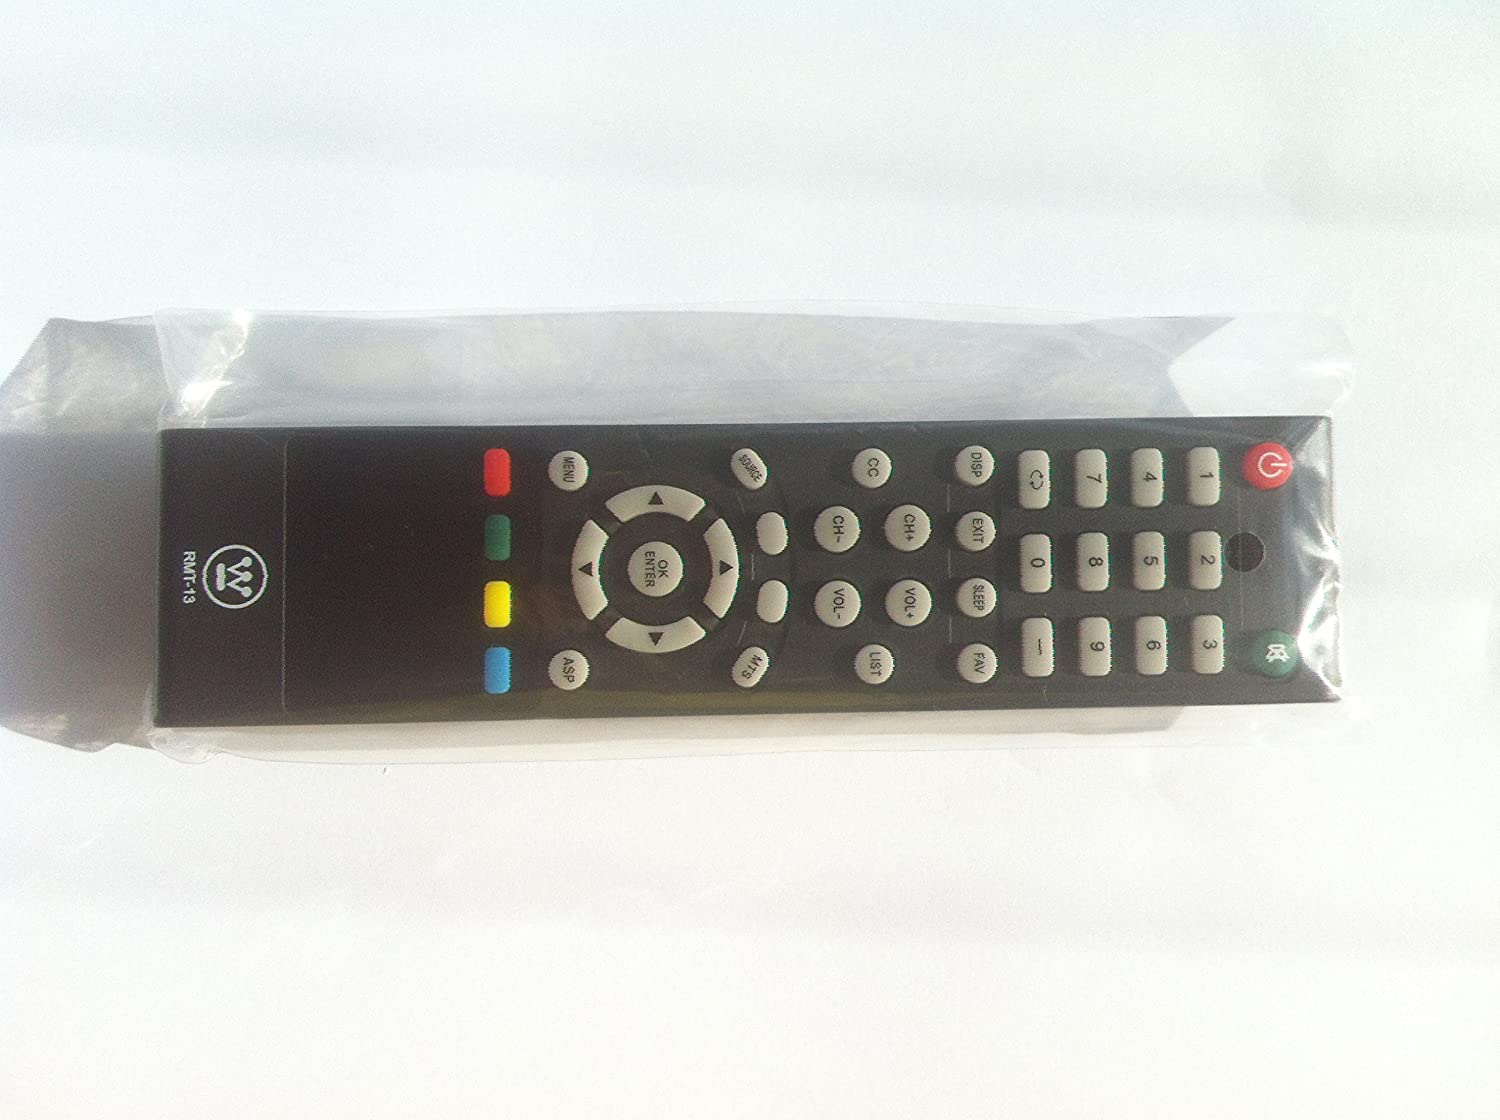 Amazoncom New Replaced Westinghouse Remote RMT13 RMT 13